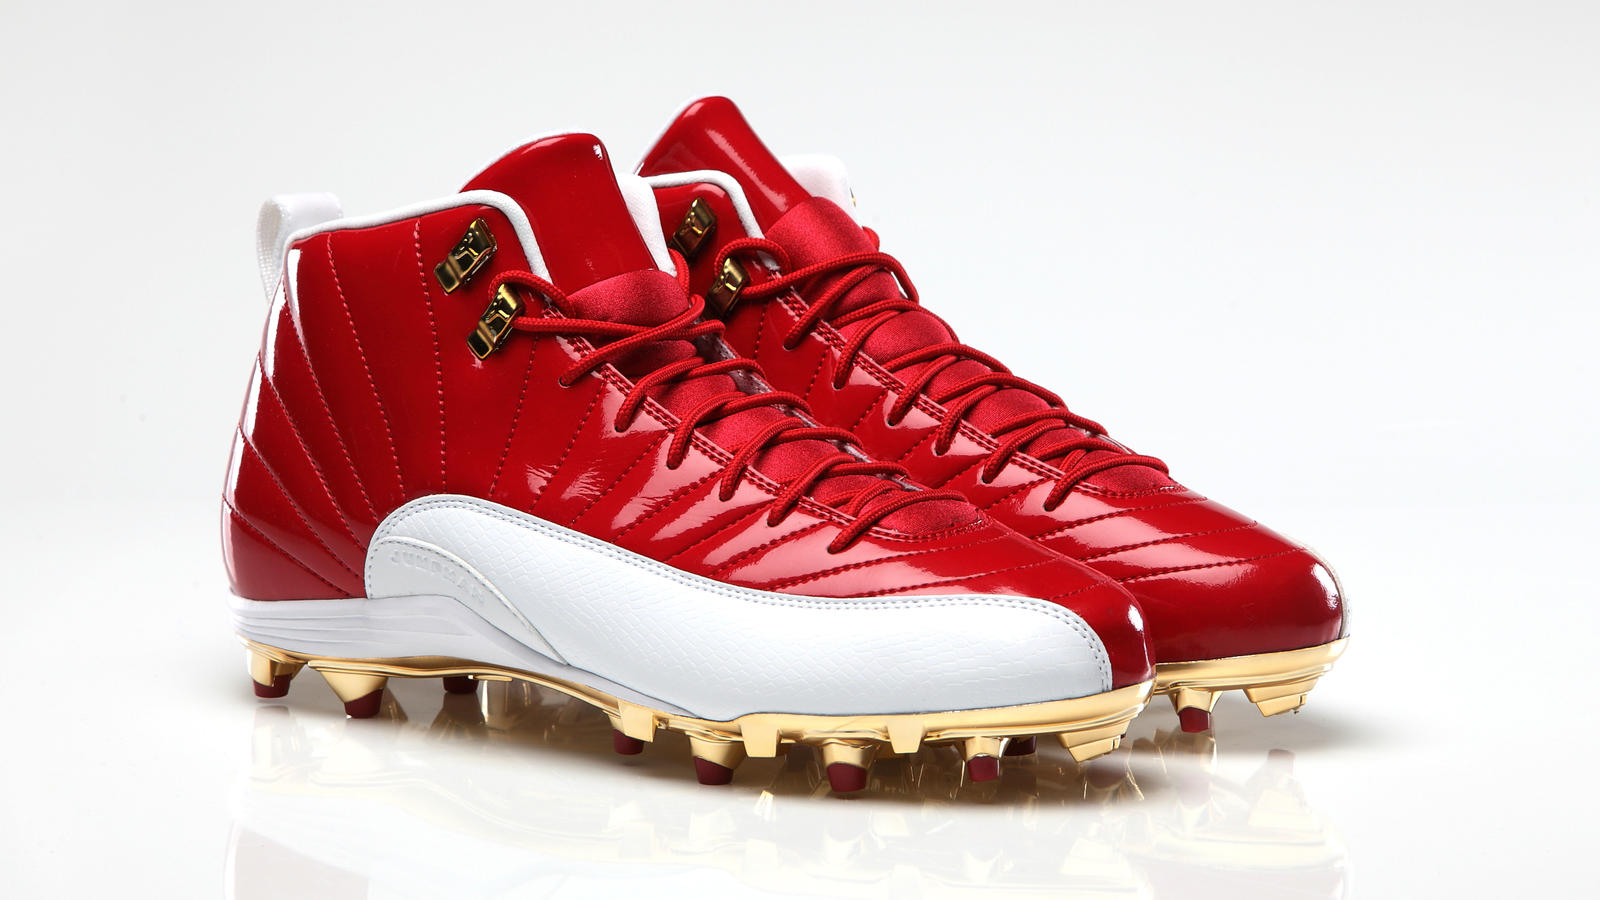 246f9a8ea35f Jordan Brand Football Athletes to Wear Air Jordan XII Cleats - Nike News